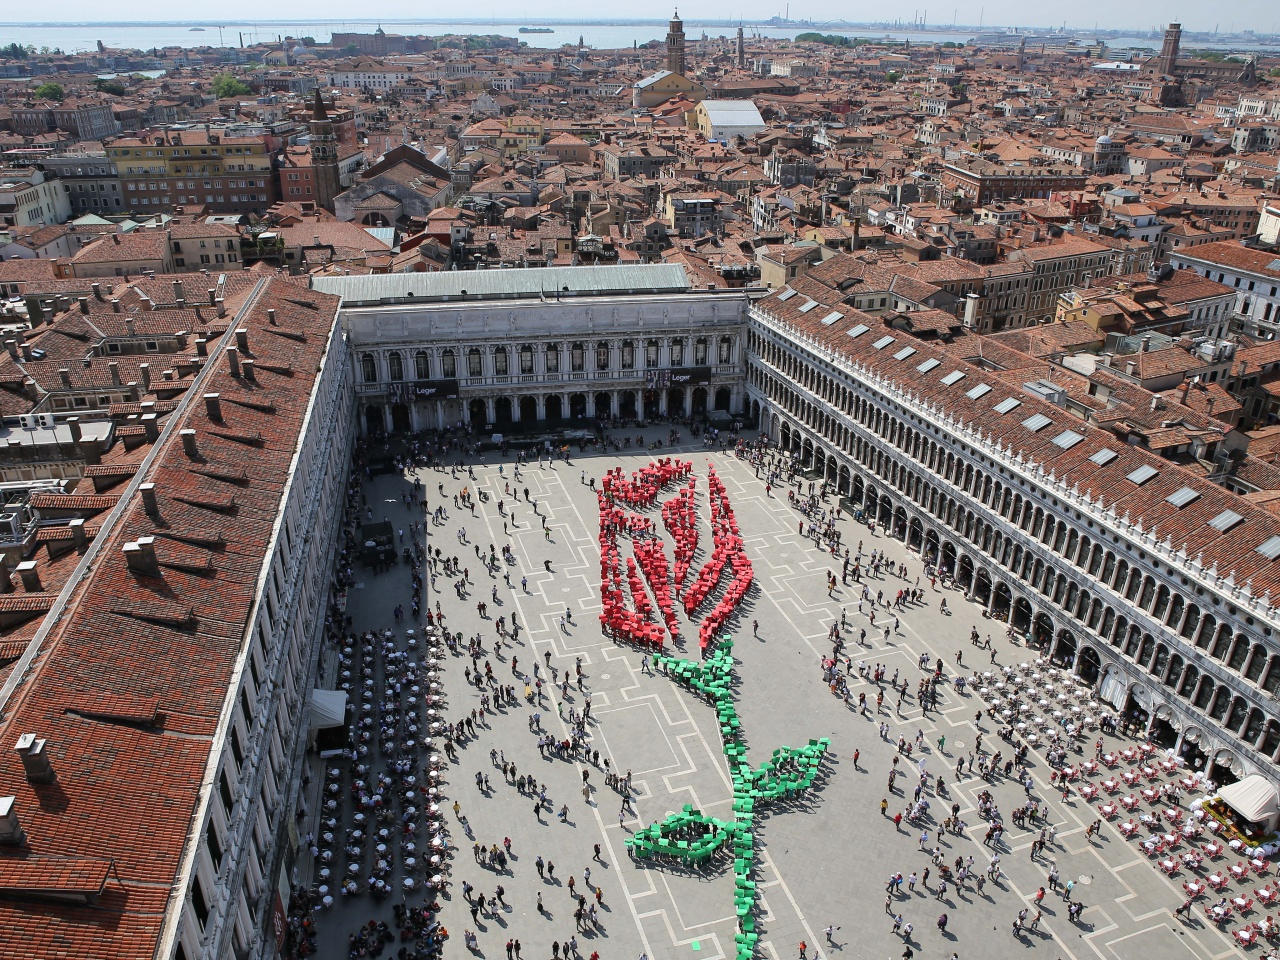 View of St. Mark's square